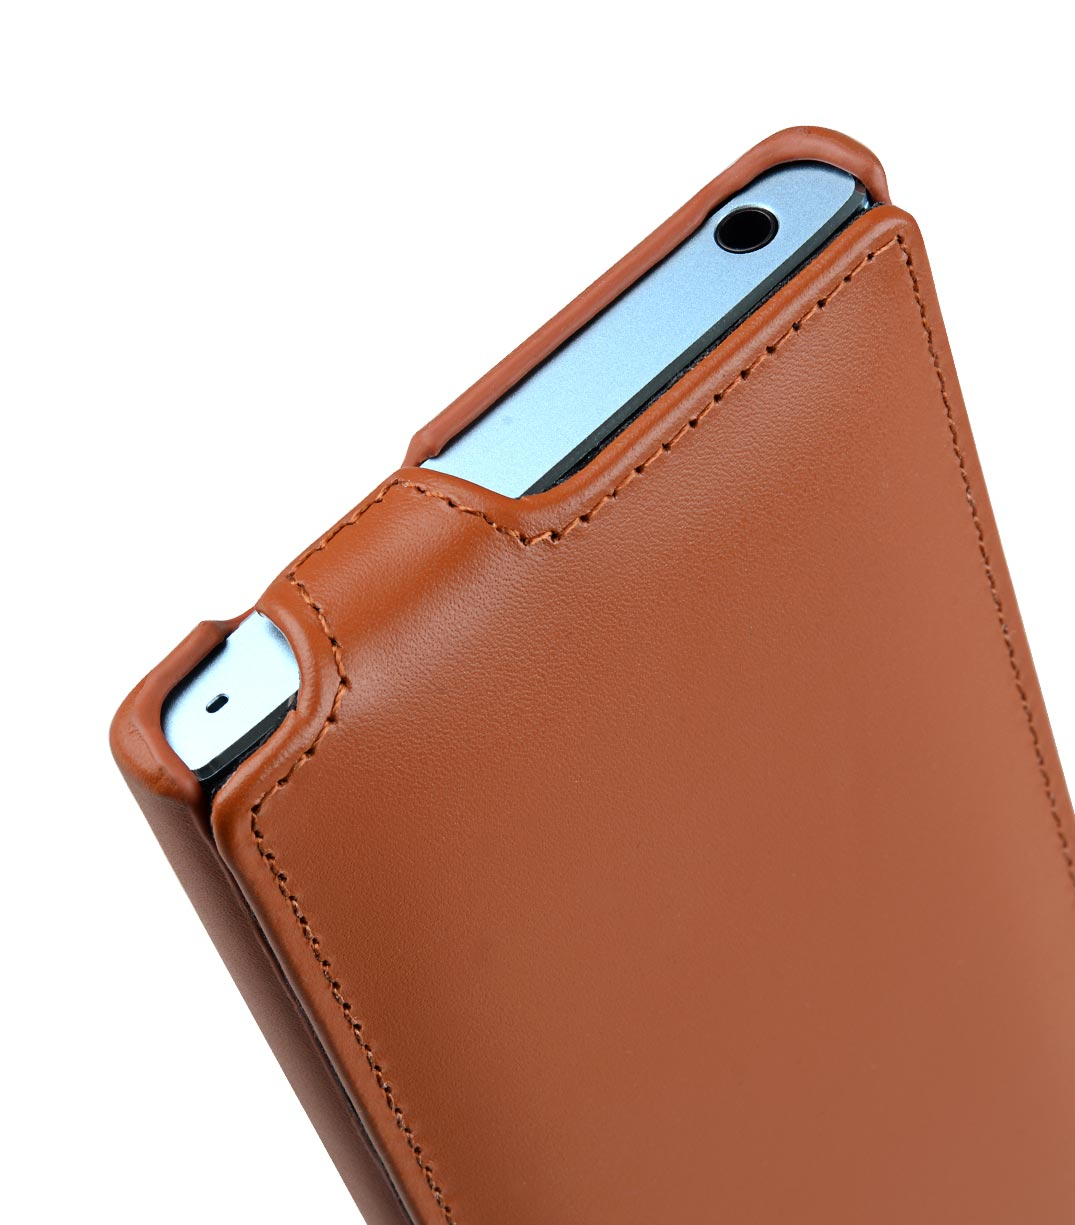 Melkco Premium Leather Case for Sony Xperia XA2 - Jacka Type (Brown CH)